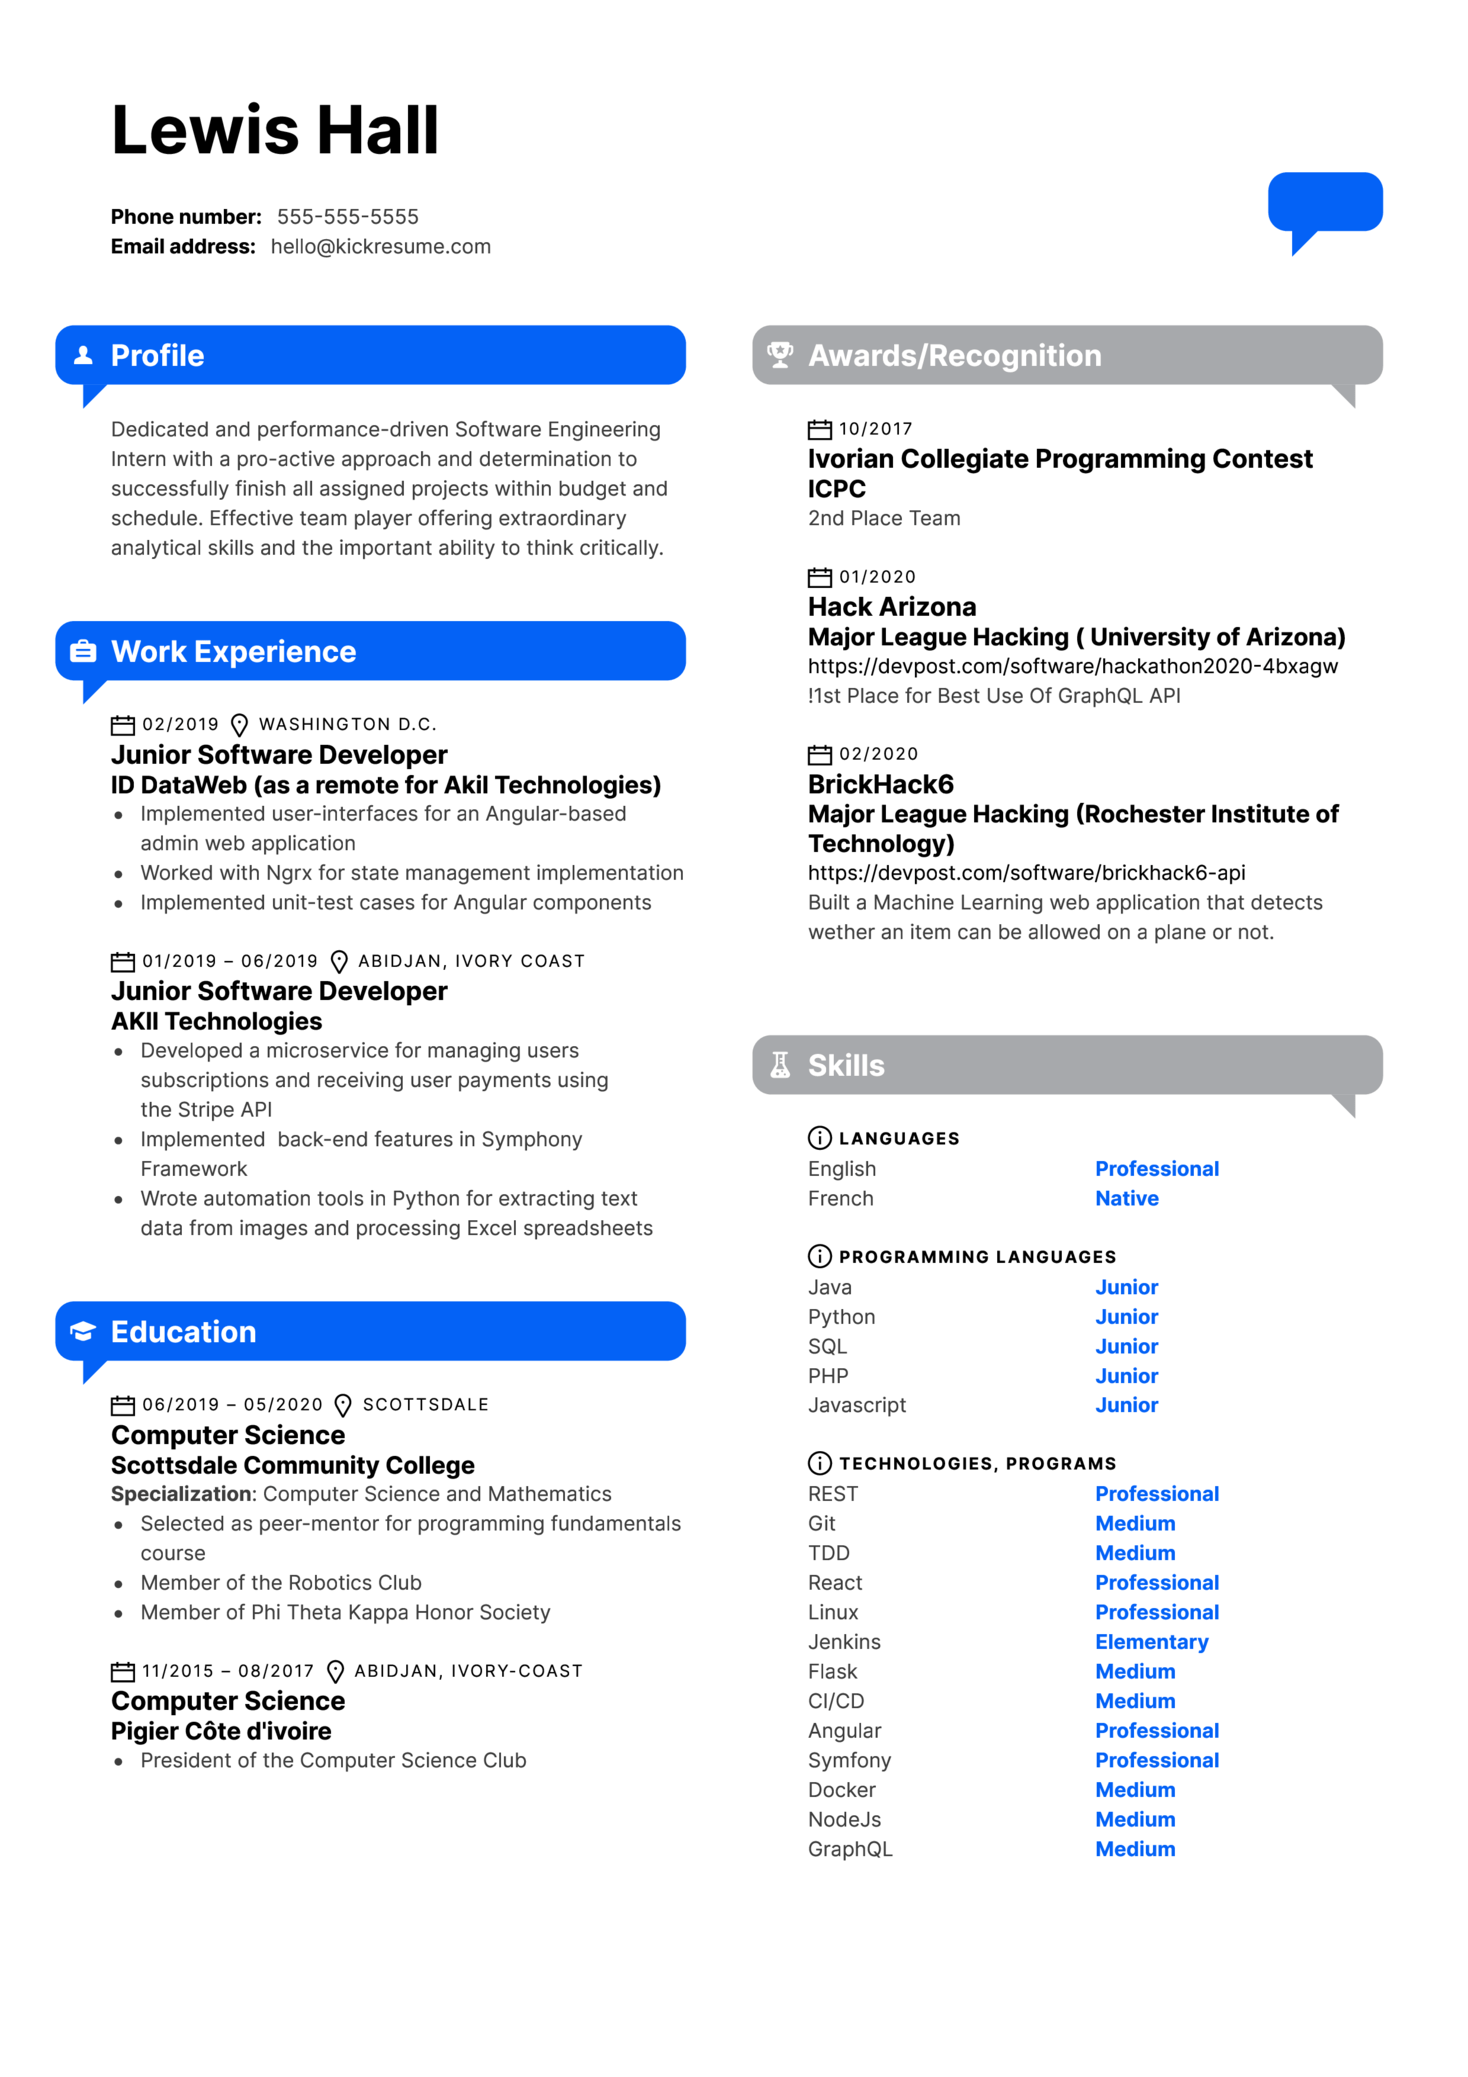 CampusLogic Software Engineering Intern Resume Example